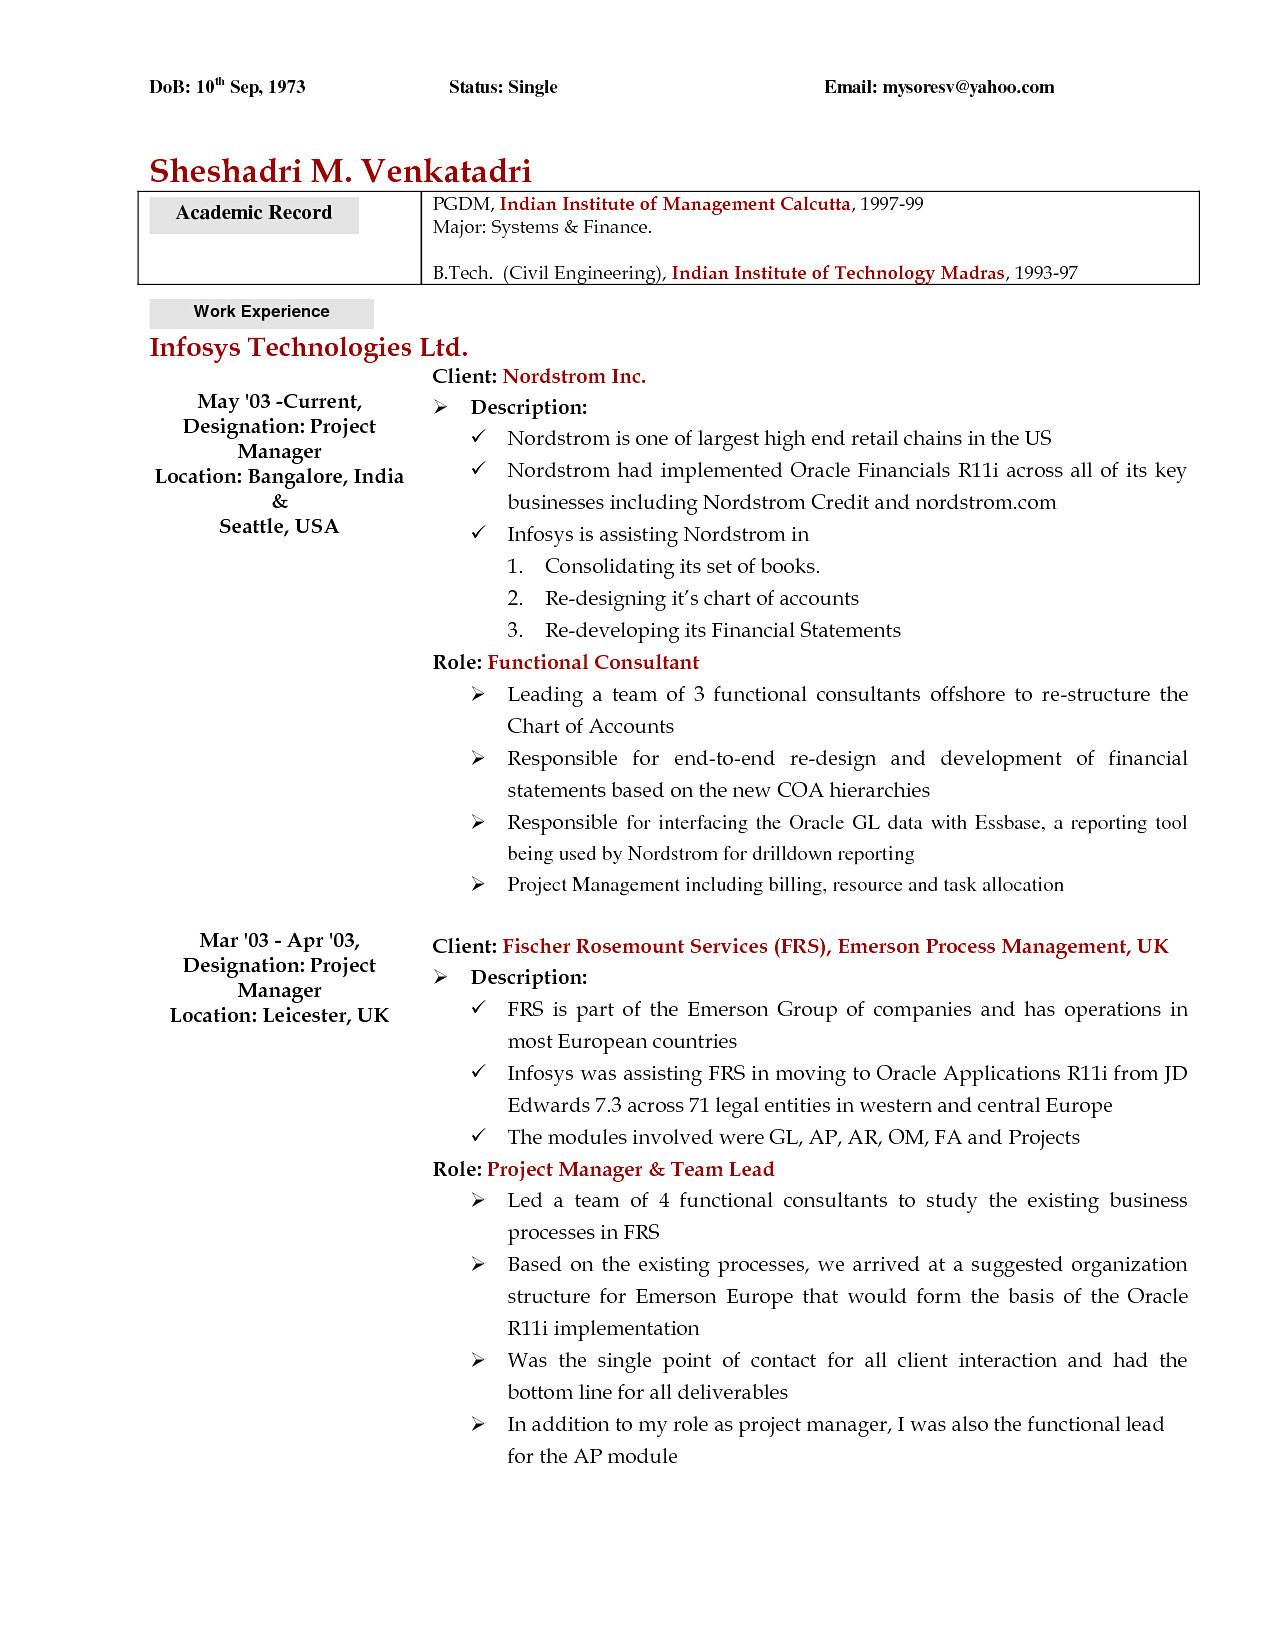 pilot resume template example-academic resume examples Unique Academic Resume Samples Luxury Banking Resume Examples Elegant Od for academic resume 12-i